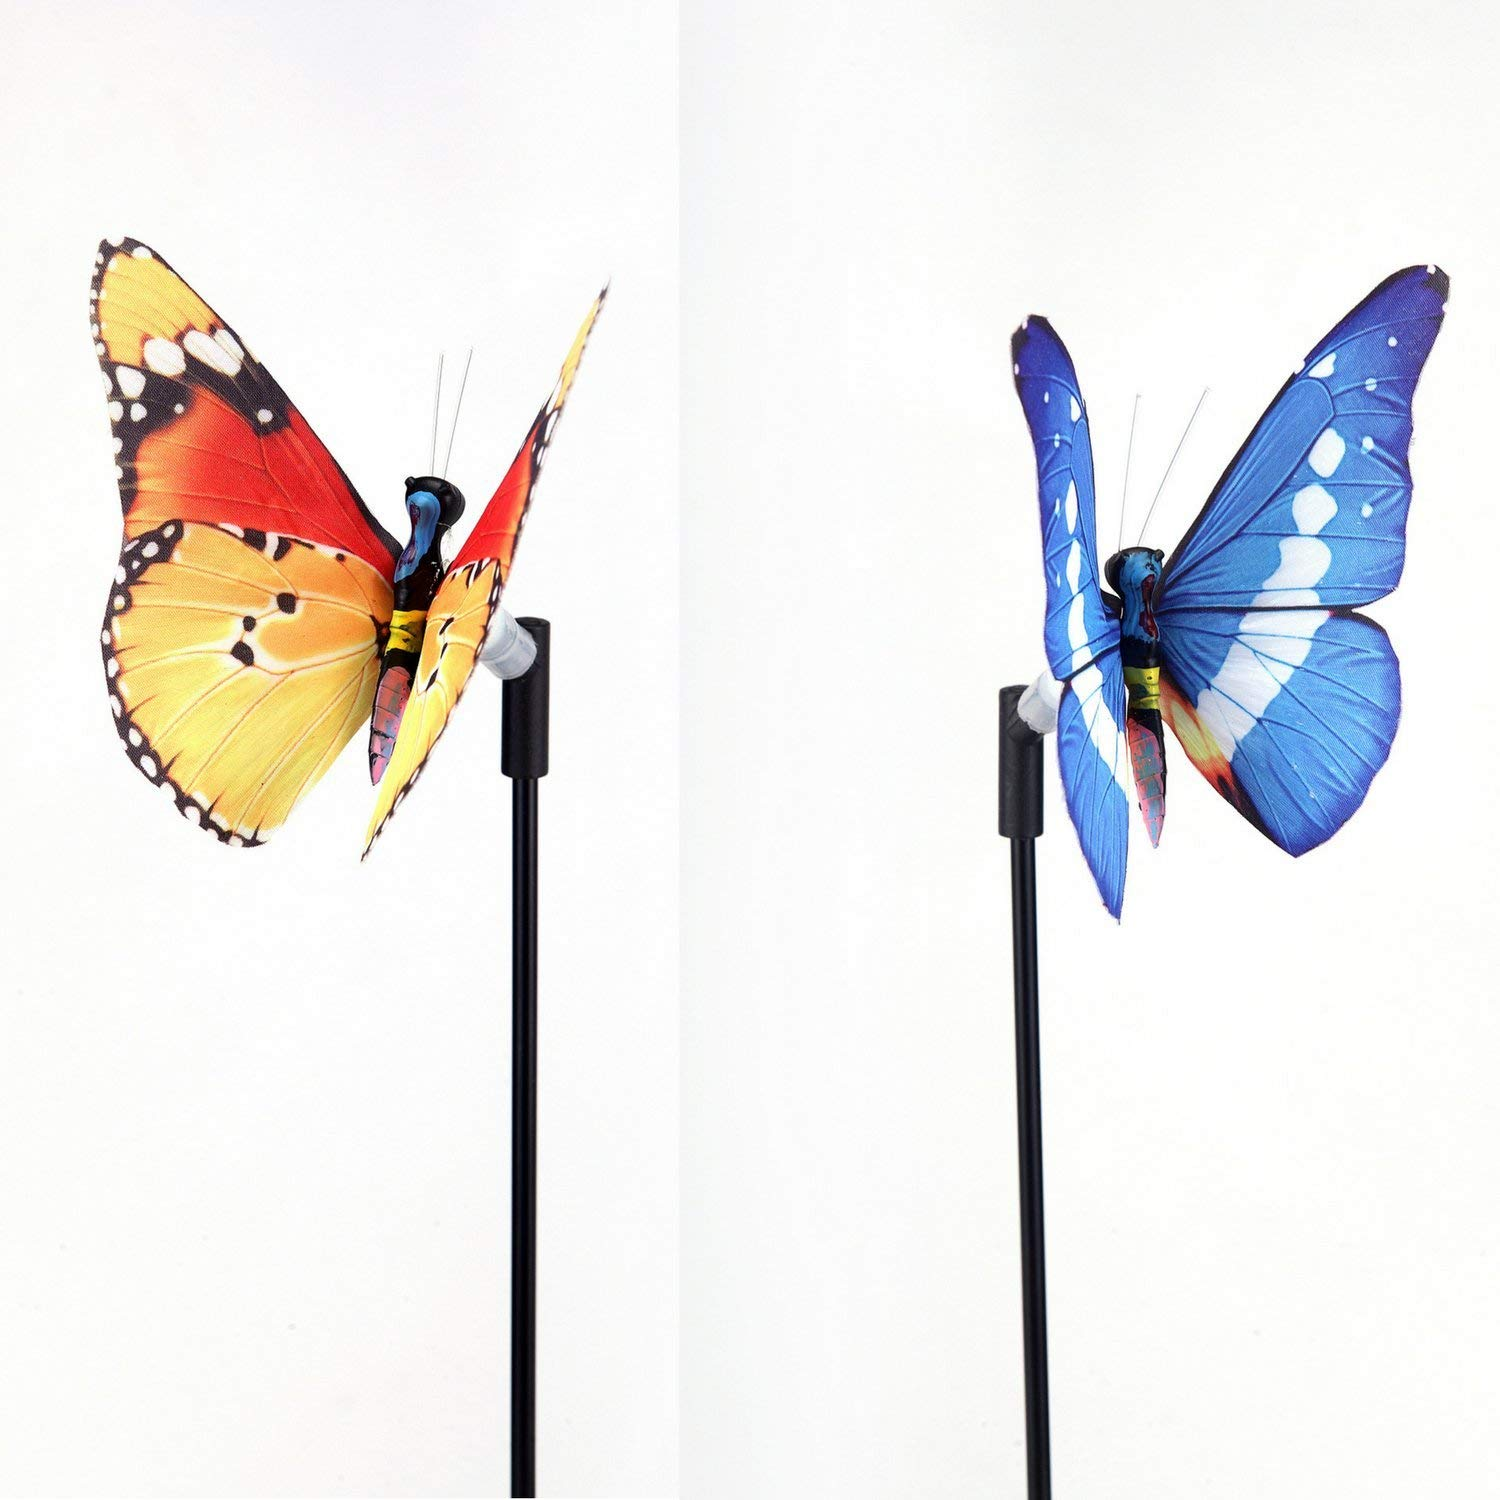 Solar Powered Butterfly LED Decorative Light Lamp for Outdoor Garden Fence Pathway Stairs Light Lamp Step Light - Light stick style (2 in 1 pack - Random Colors) (Non-LED Stick)